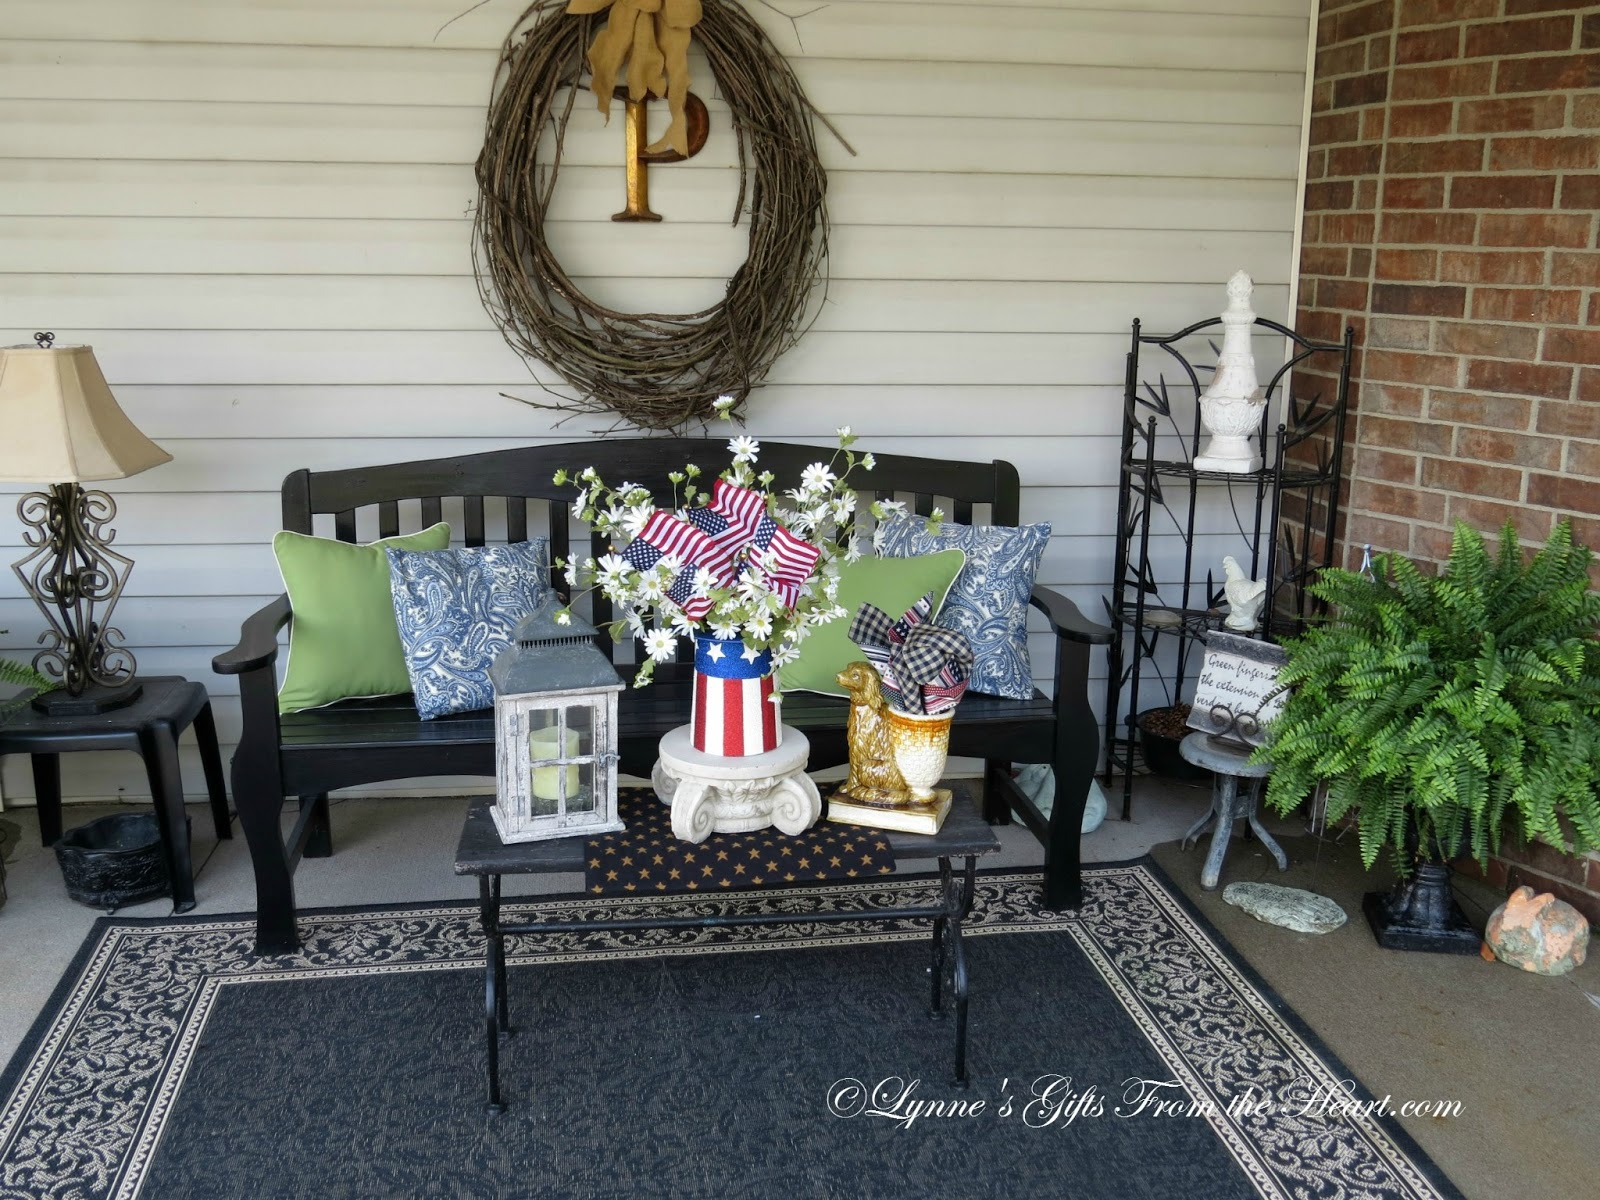 Lynne S Gifts From The Heart An Americana Patio